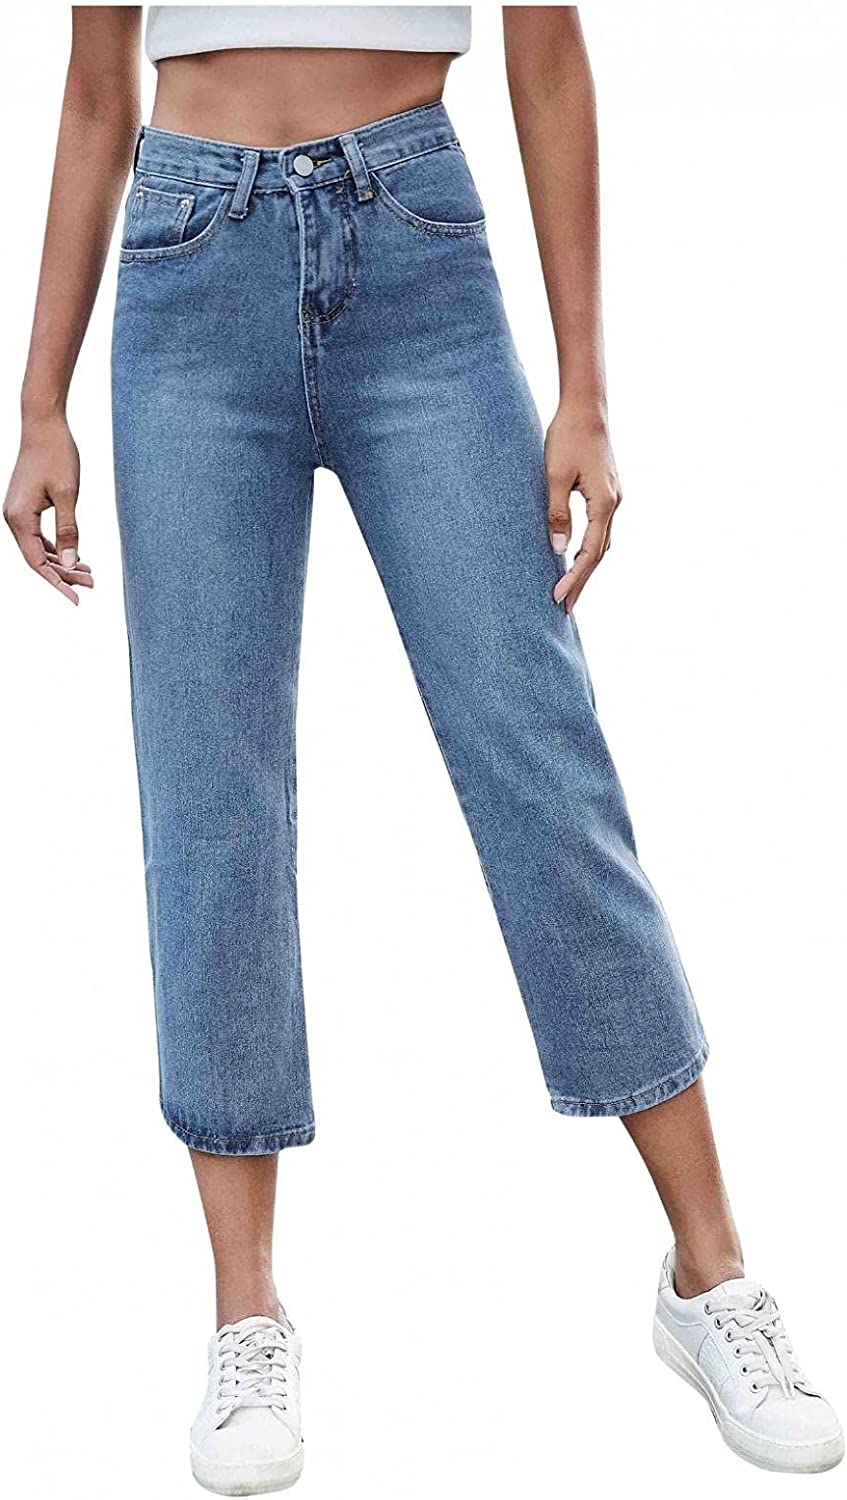 MASZONE Straight Jeans for Women, Womens Y2K Fashion High Waist Casual Jeans Ankle Stretch Slim Fit Cropped Denim Pants